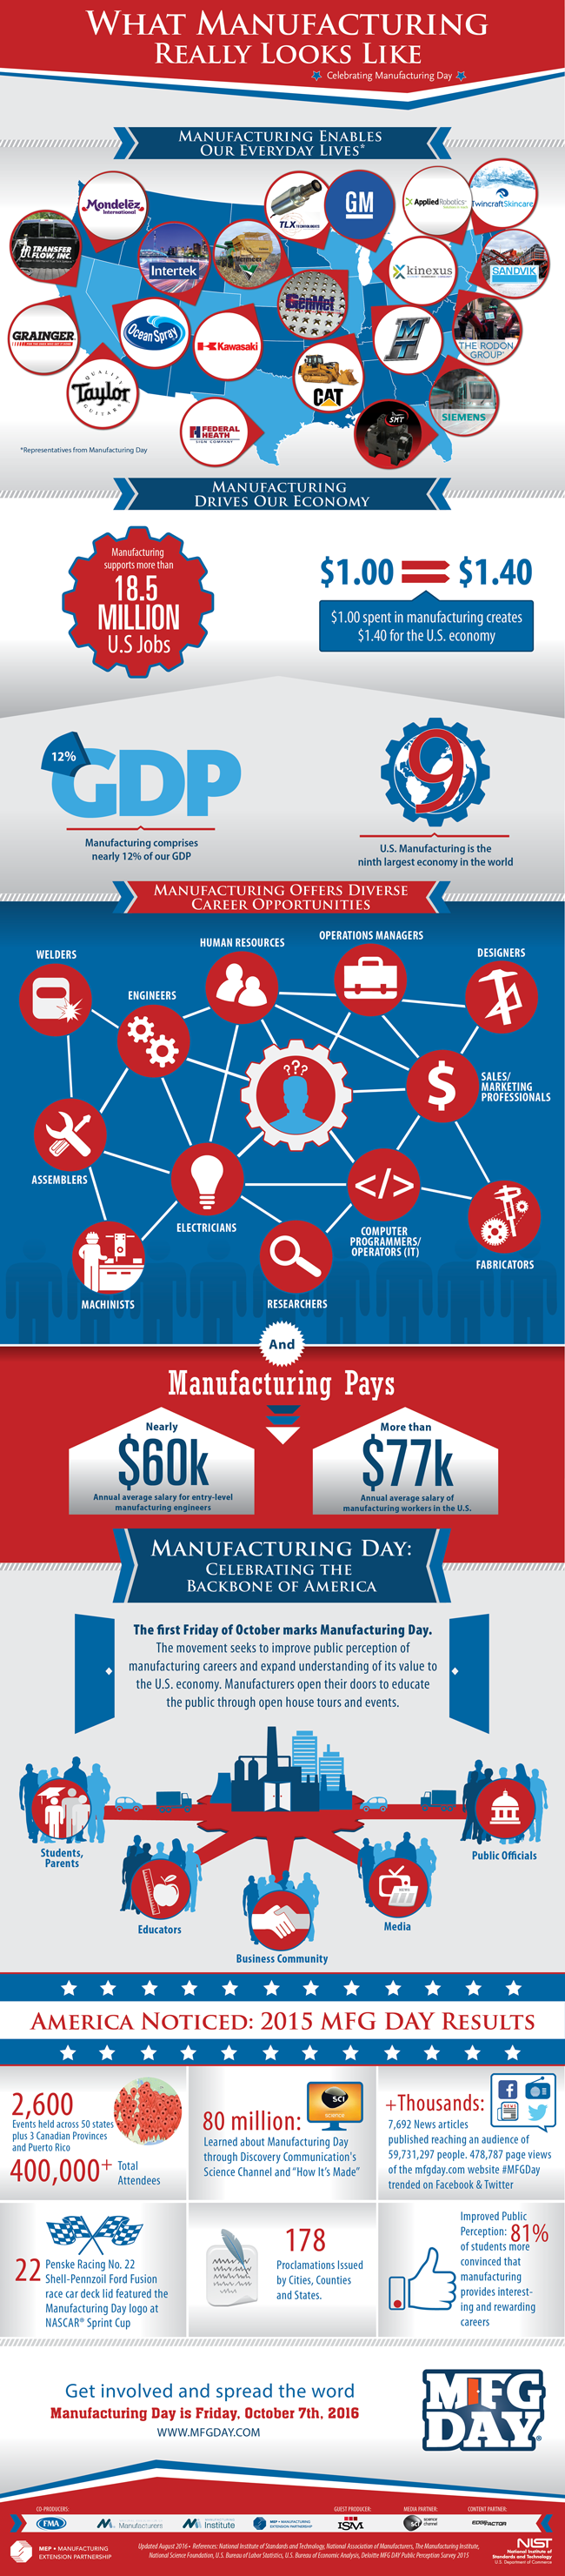 Rivet MRO can help you celebrate MFG DAY in style, with an endless assortment of promotional products for your industrial employees and customers.